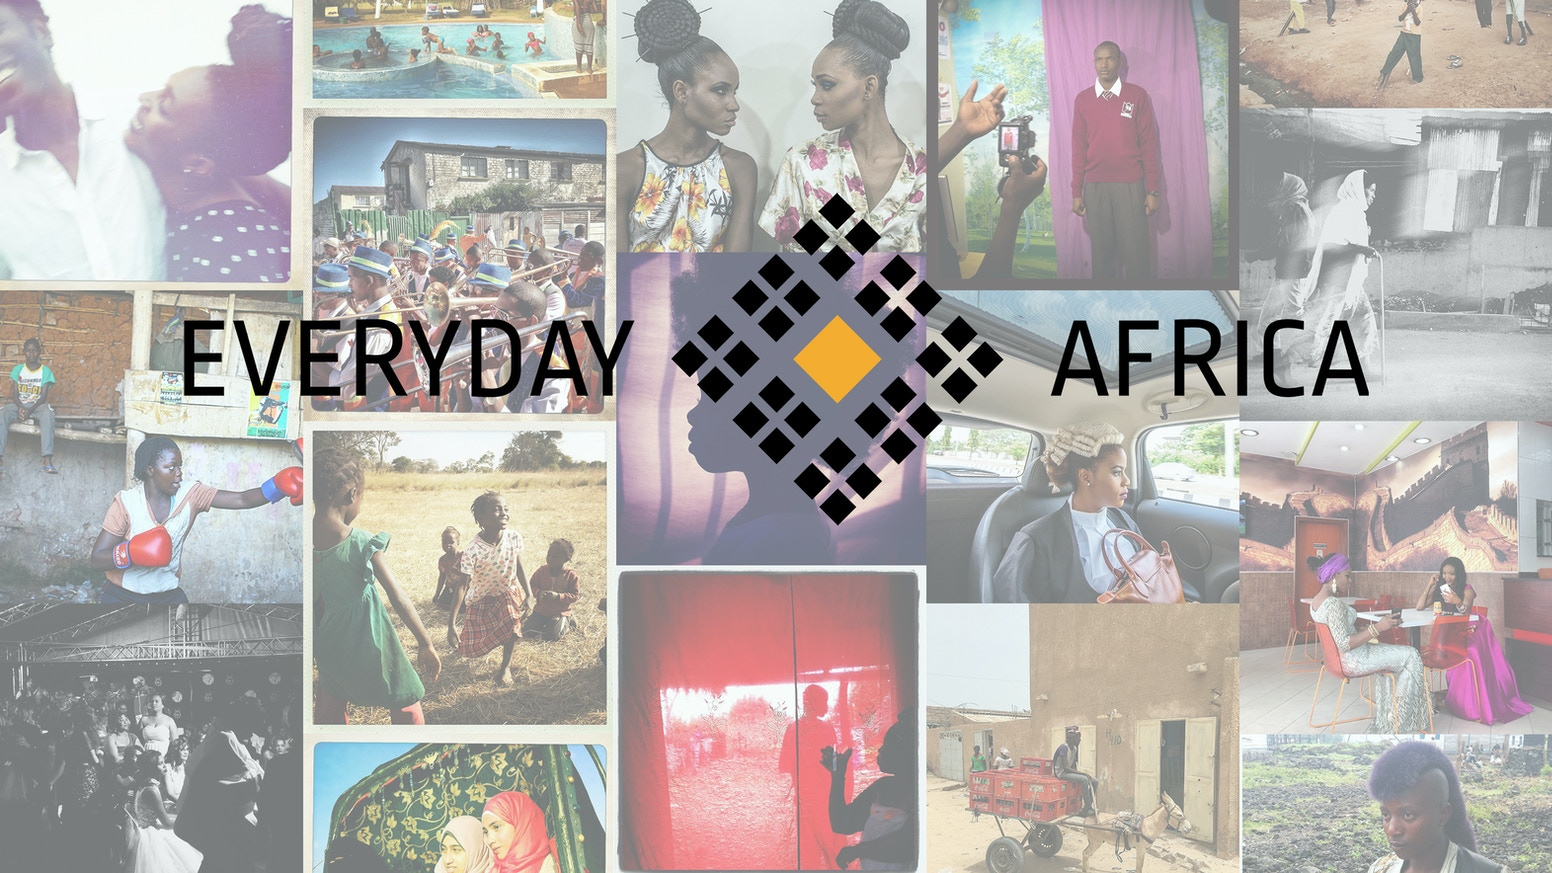 A photobook of Everyday Africa, the Instagram project transforming the way people view daily life on the continent.